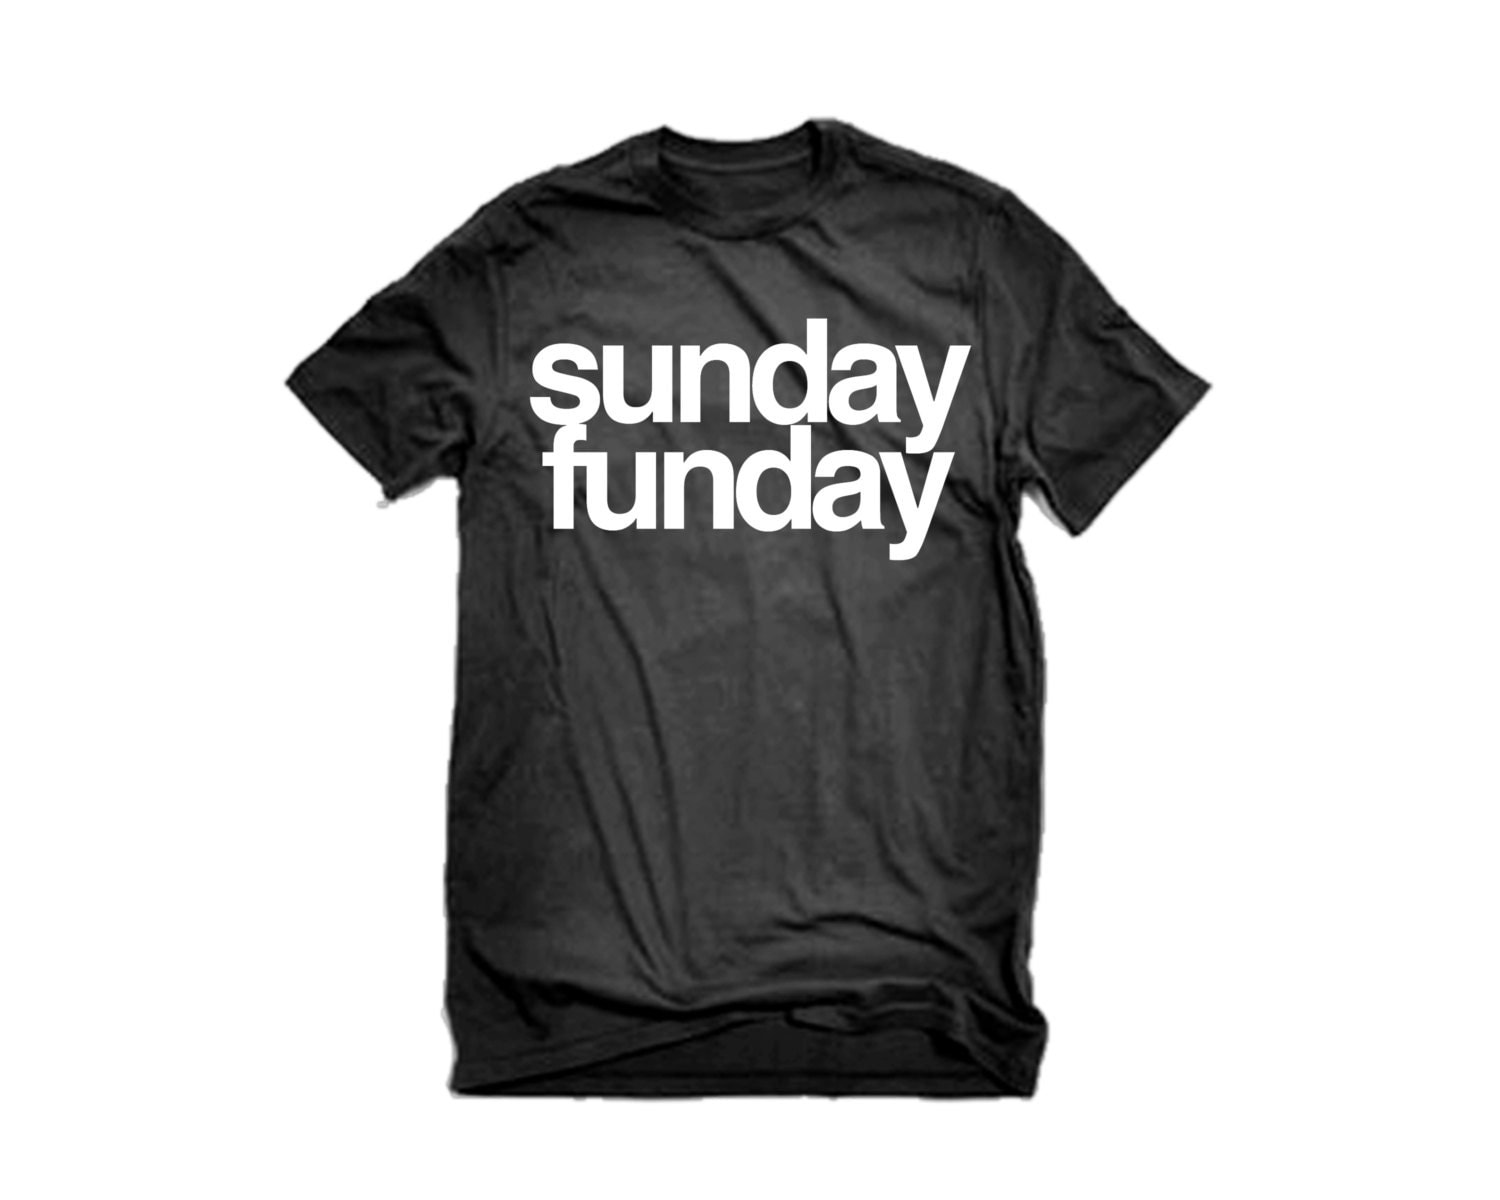 Sunday Funday T-shirt Football Game Day Tee Funny By Tshxrt